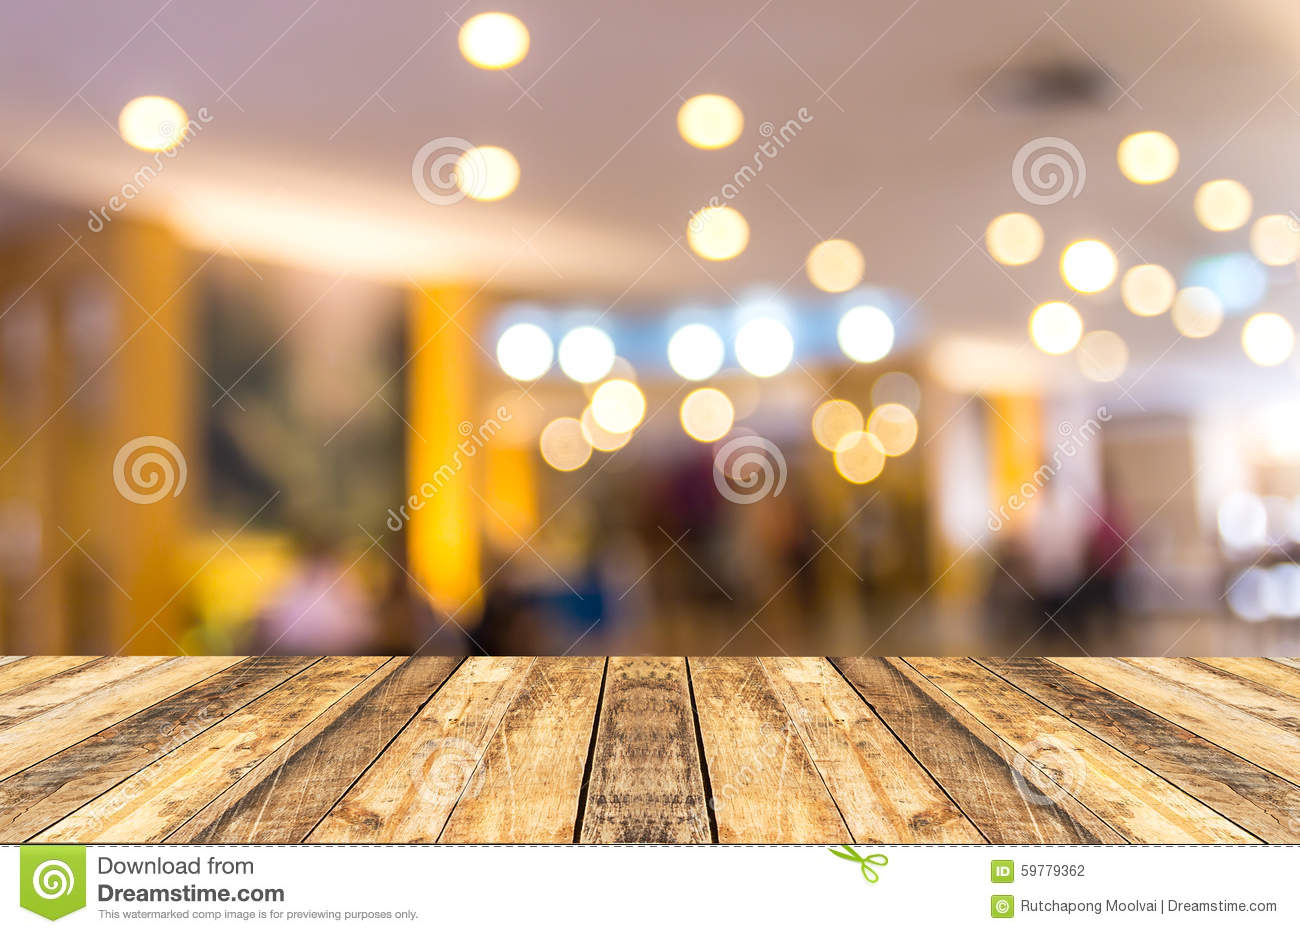 Old wooden table with blurred hotel lobby background stock photo image 59779362 - Photo image design ...